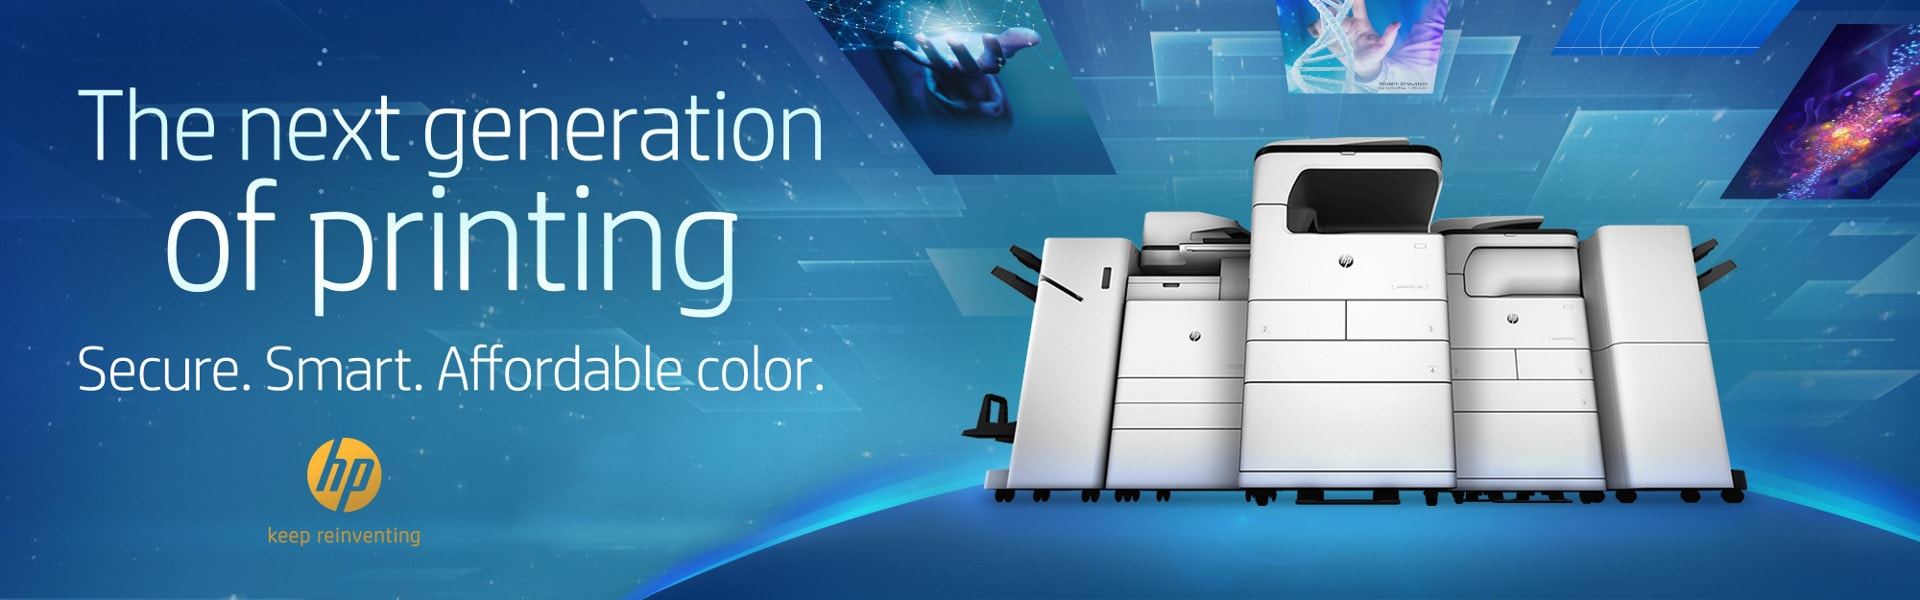 HP A3 Next generation of printing dtb office solutions Kopierer Multifunktionsdrucker Laserdrucker